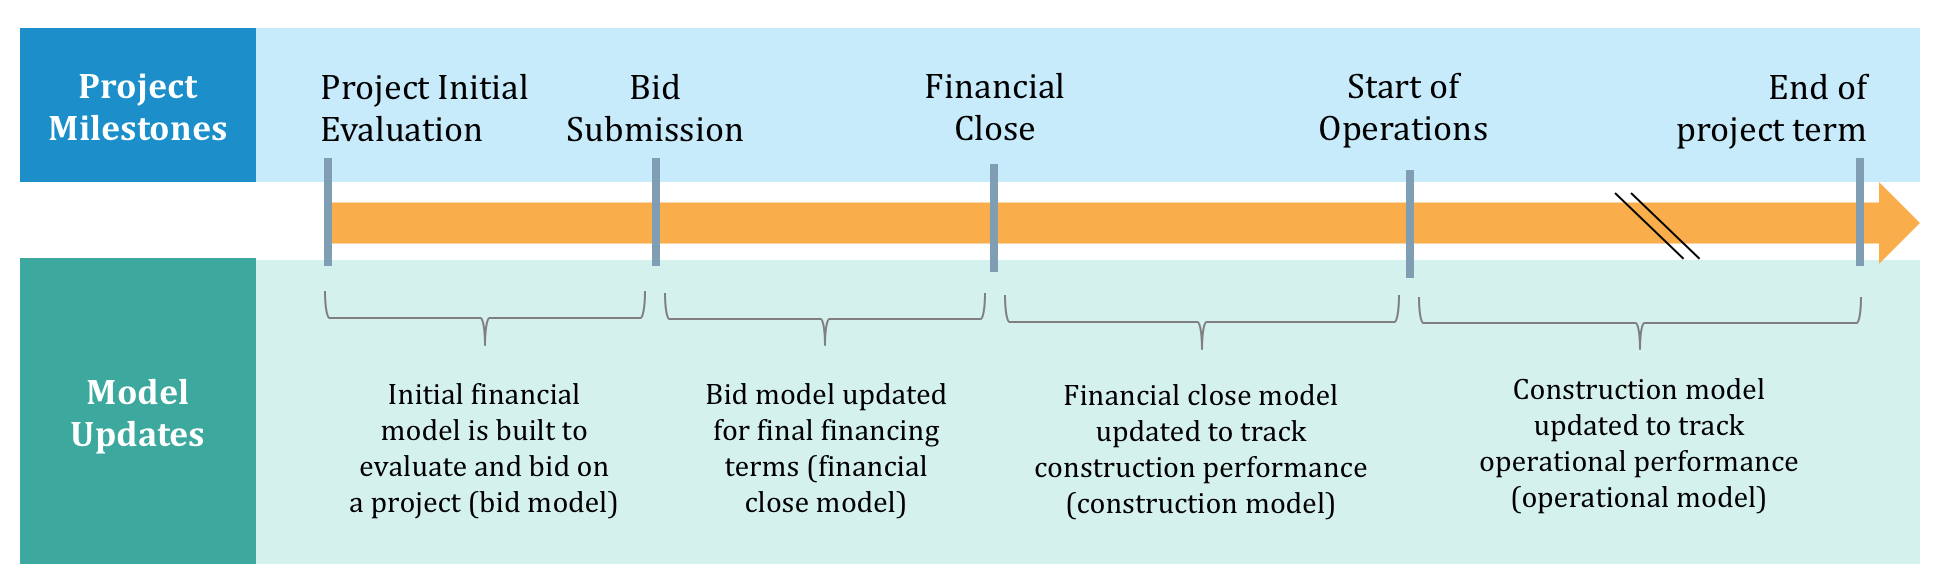 The Financial Model of The Project